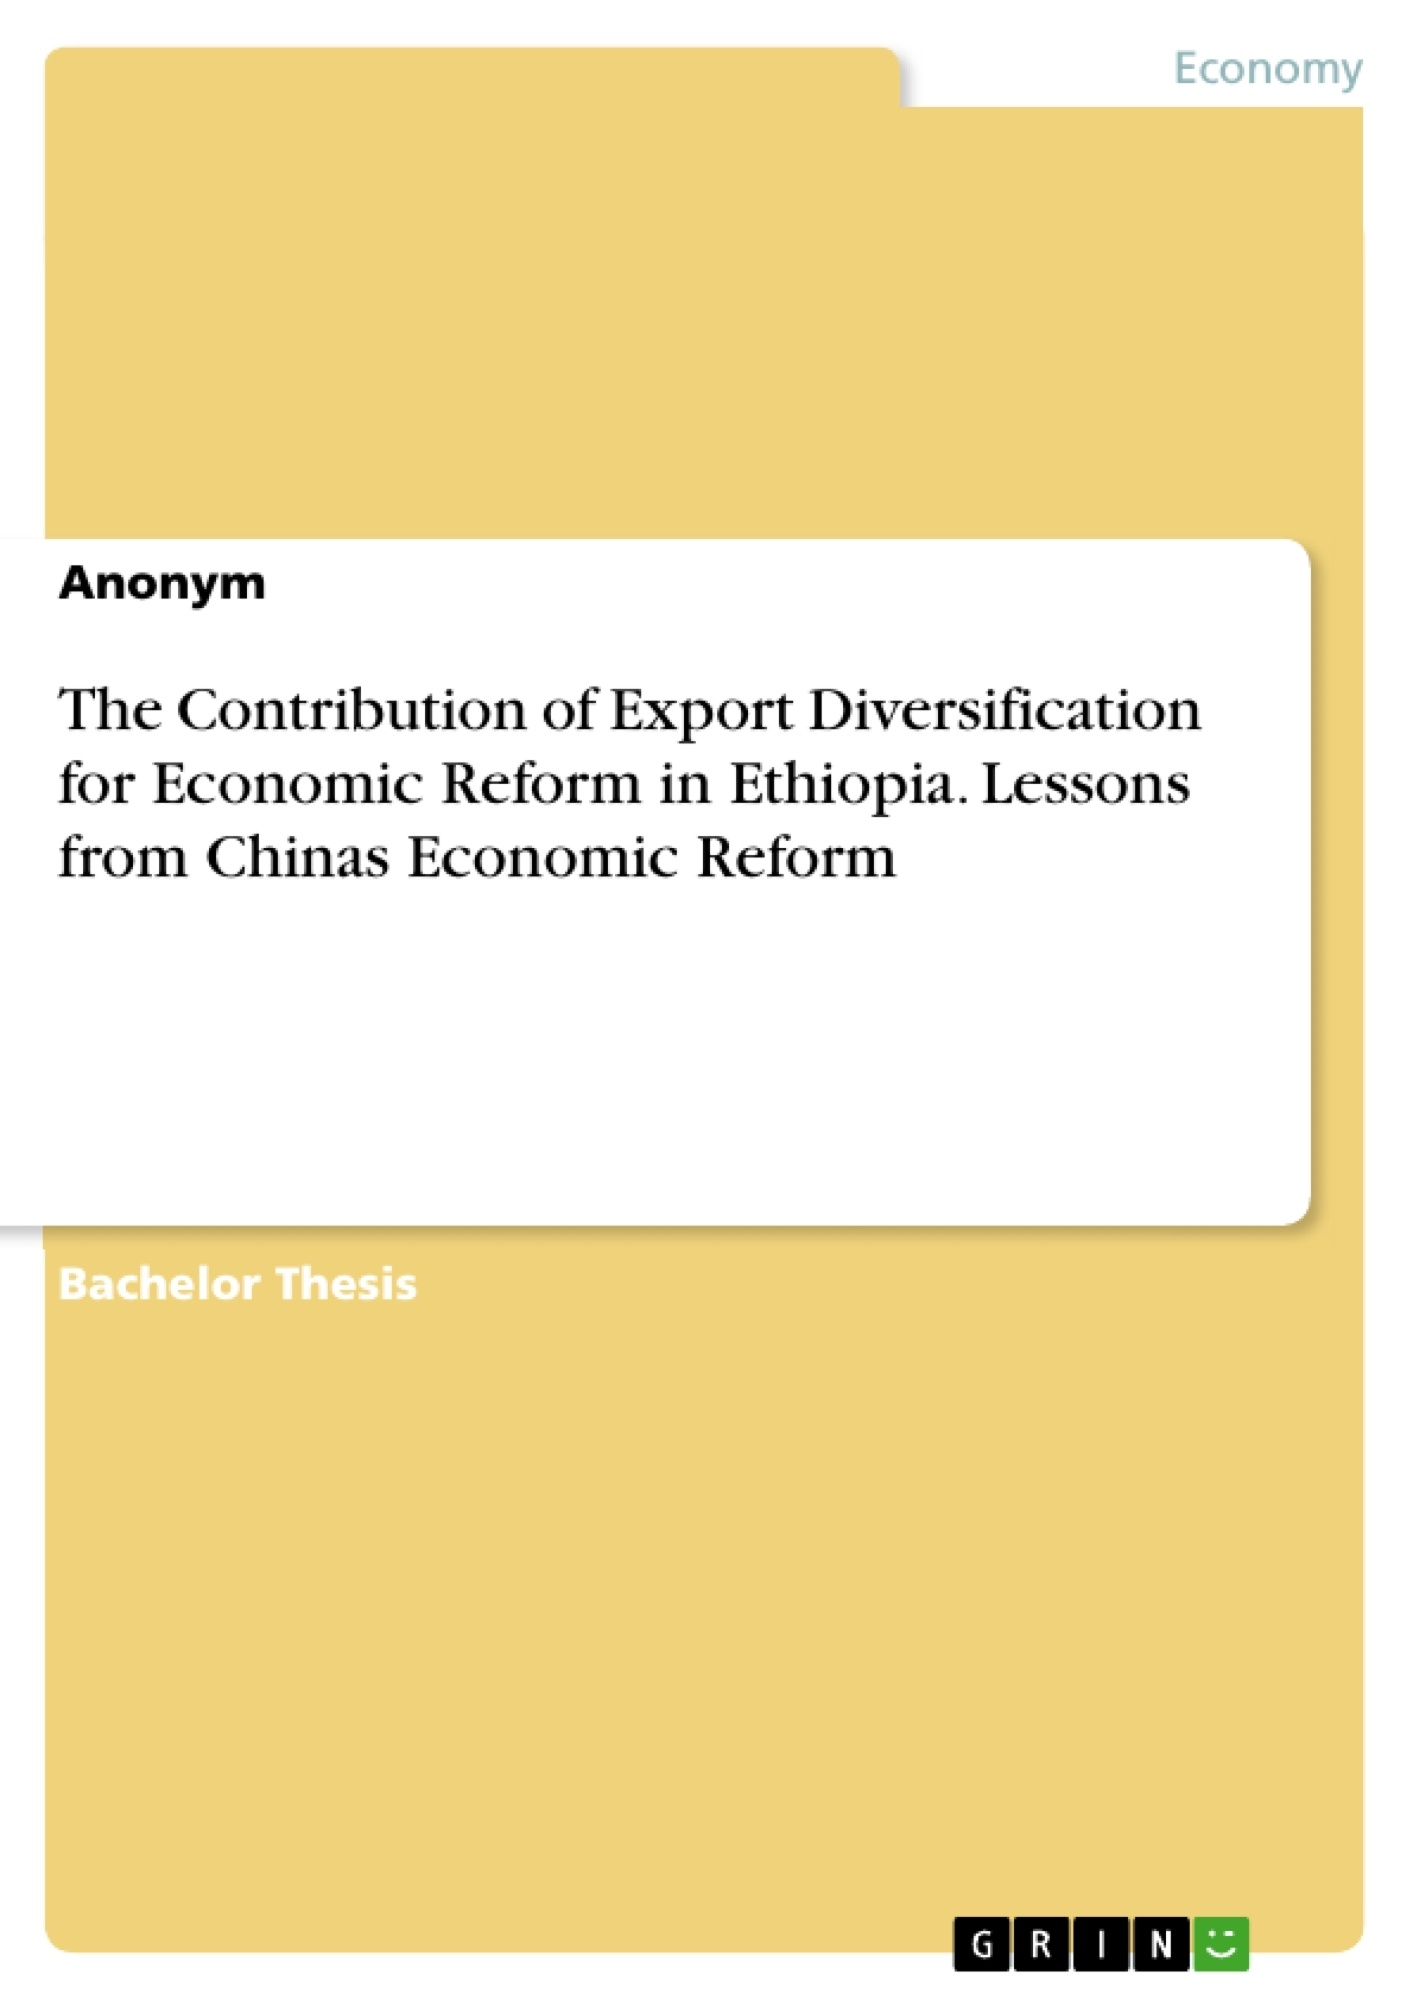 Title: The Contribution of Export Diversification for Economic Reform in Ethiopia. Lessons from Chinas Economic Reform